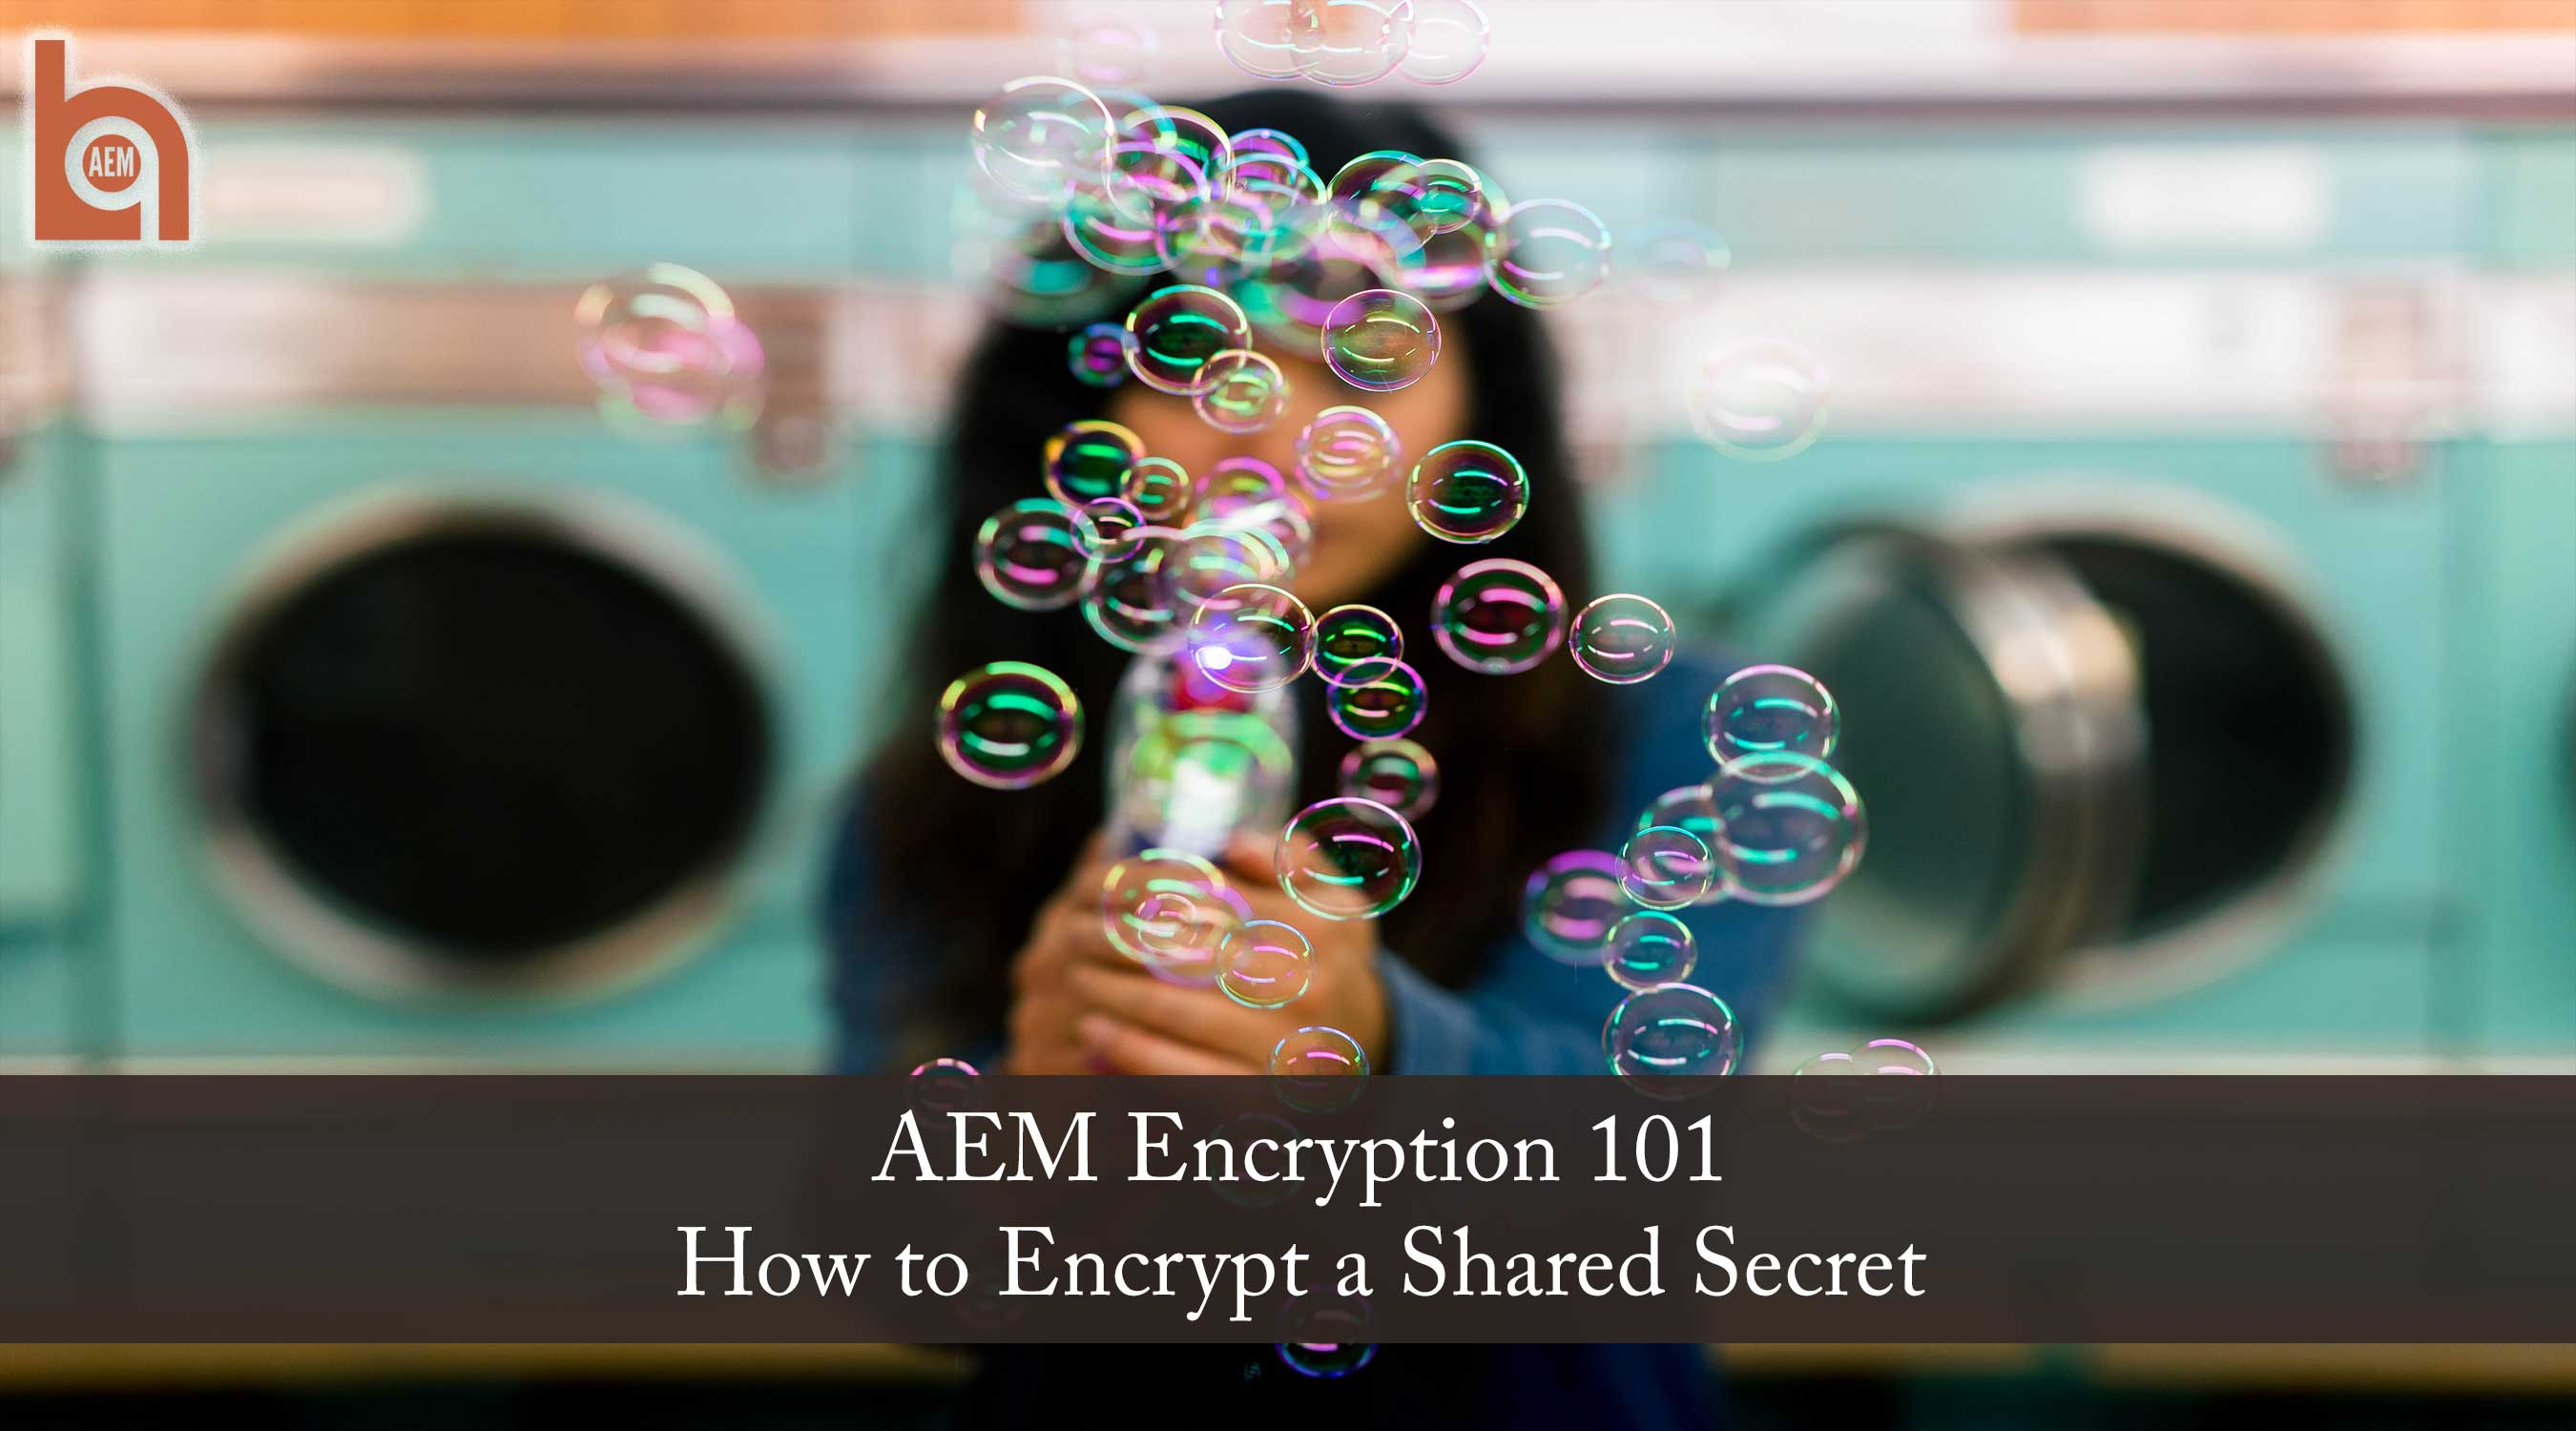 AEM Encryption 101: How to Encrypt a Shared Secret